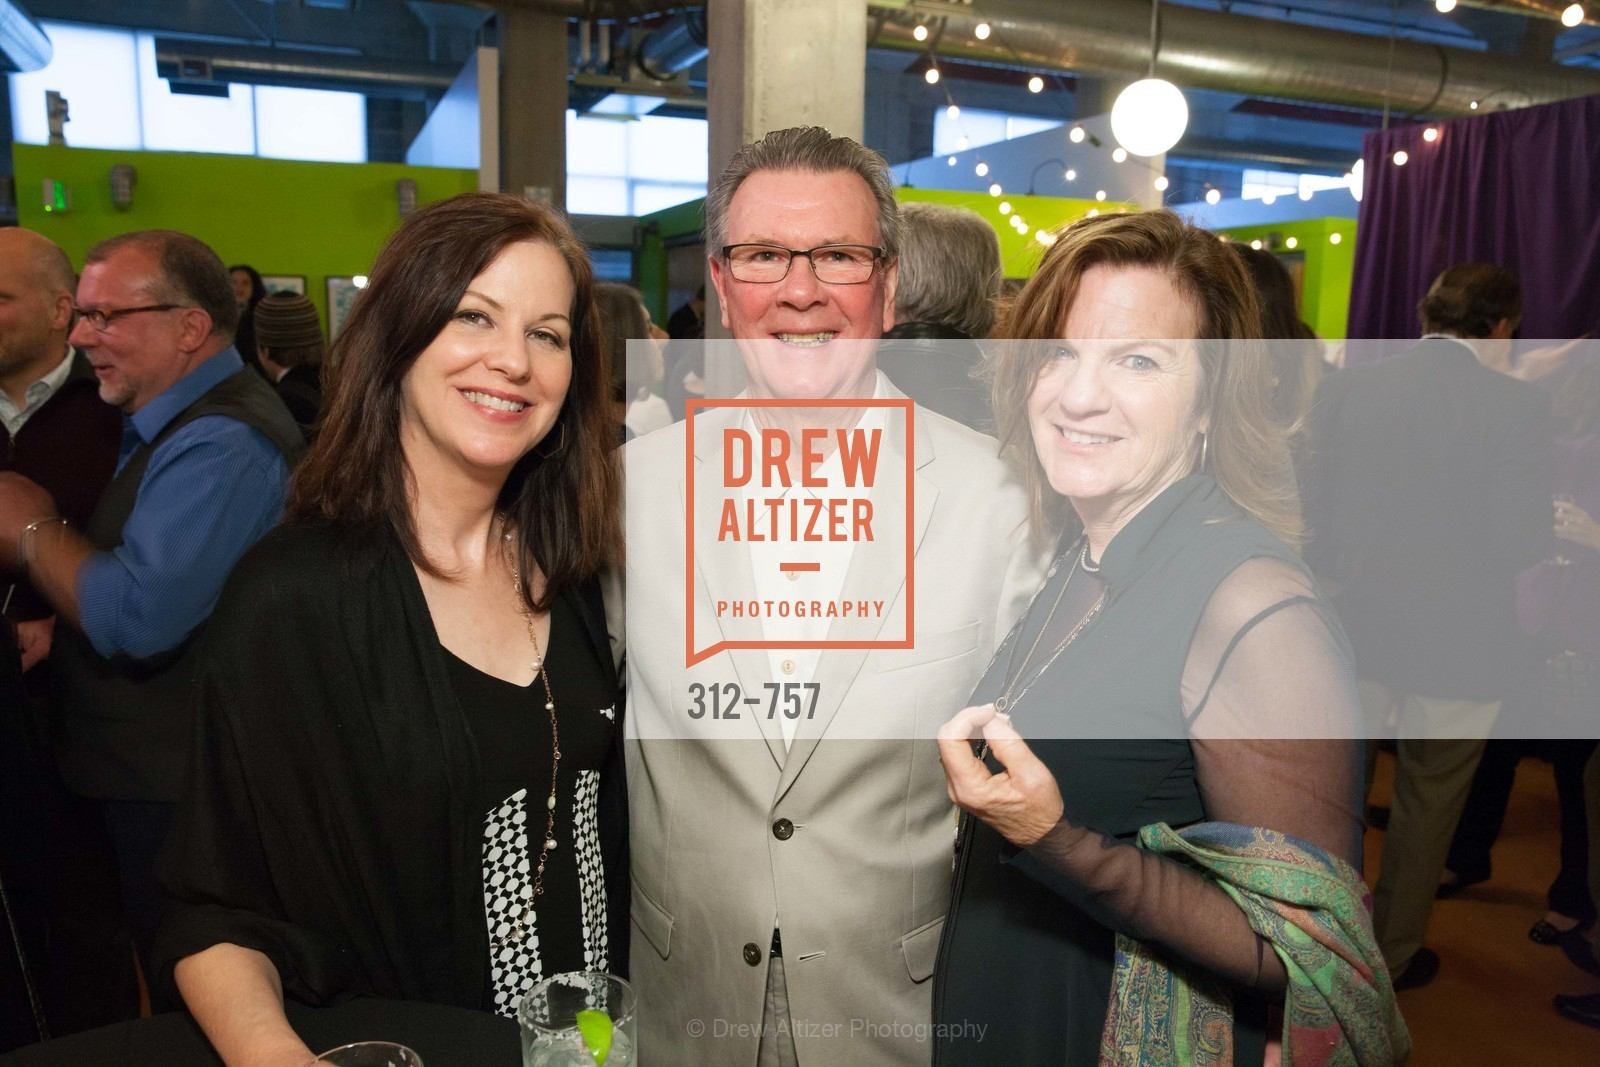 Pia Byrne, Jay Clem, Penny Hoyle, HOMELESS PRENATAL PROGRAM Our House, Our Mission Gala, US, May 30th, 2015,Drew Altizer, Drew Altizer Photography, full-service agency, private events, San Francisco photographer, photographer california